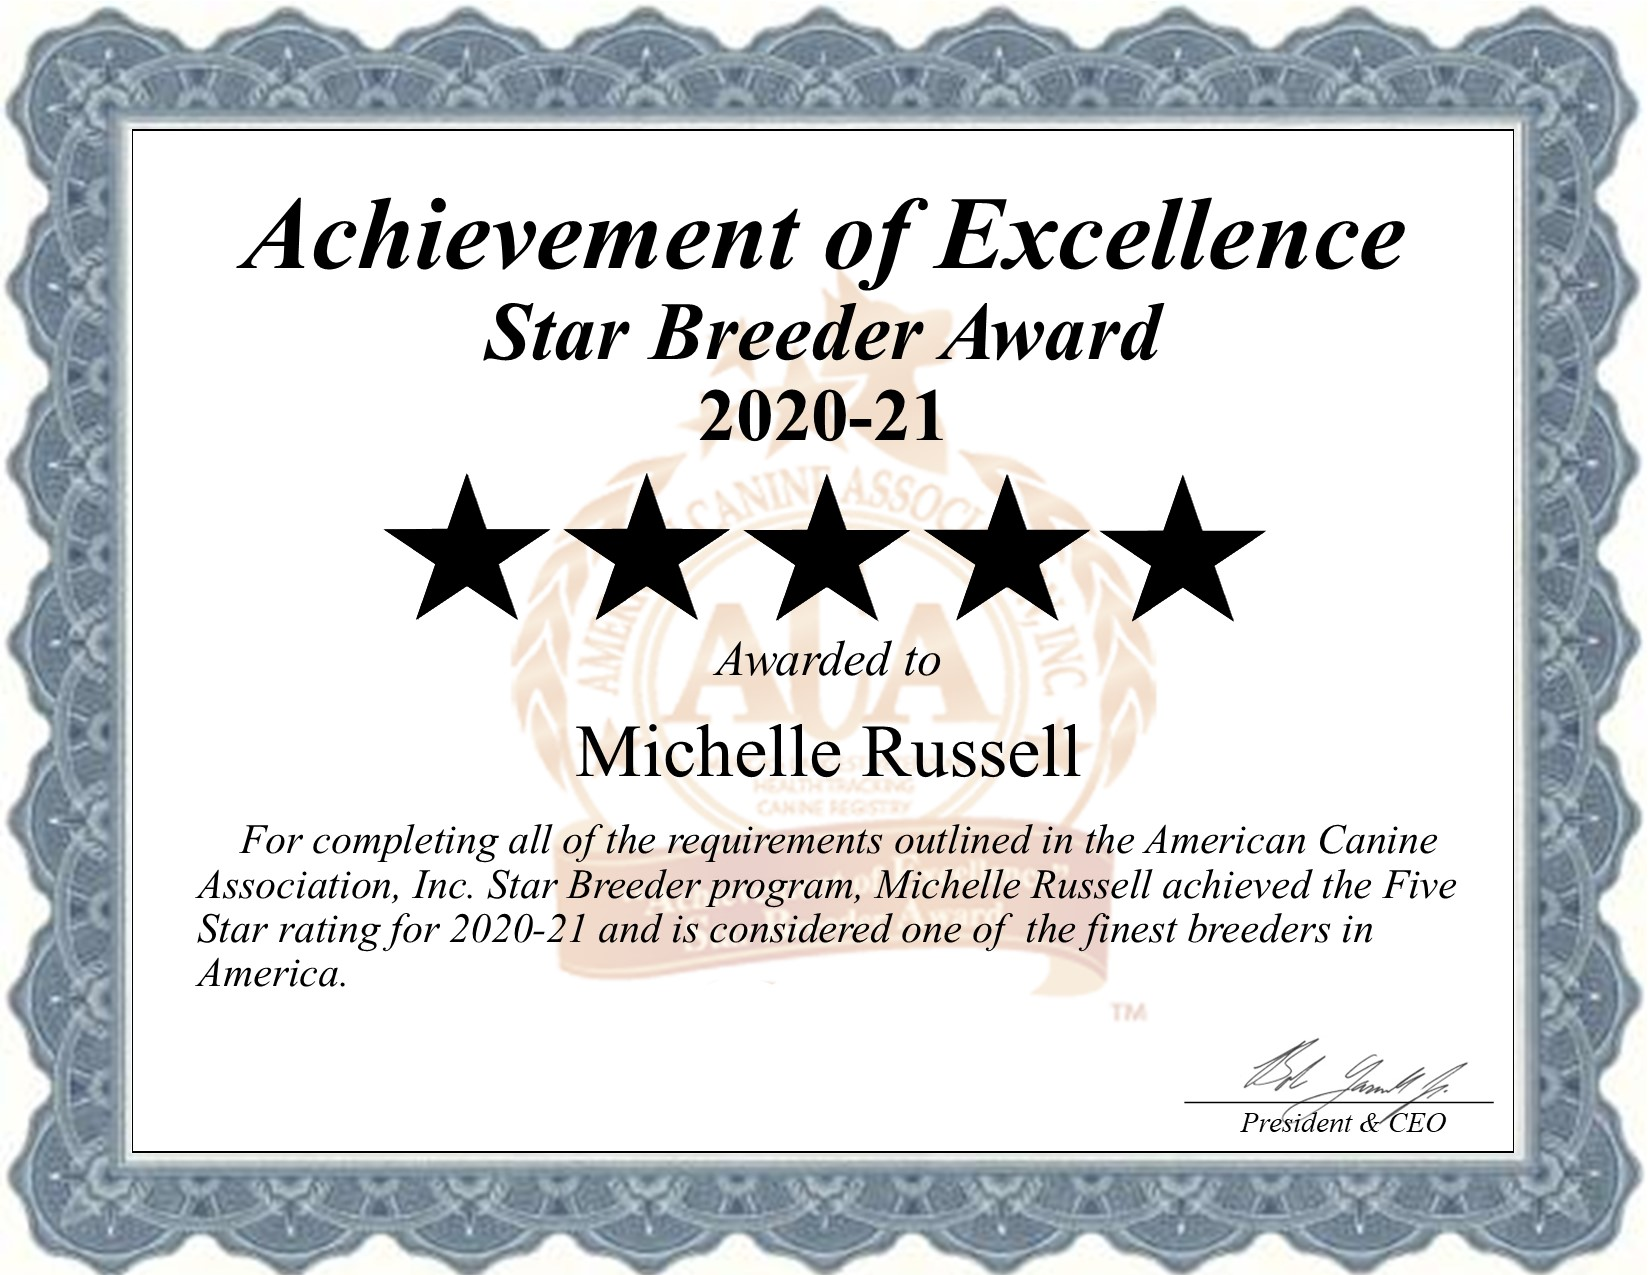 Michelle, Russell, dog, breeder, star, certificate, Michelle-Russell, Erie, KS, Kansas, puppy, dog, kennels, mill, puppymill, usda, 5-star, aca, ica, registered, french, bulldogs, frenchies, 48-A-1869, 48a1869